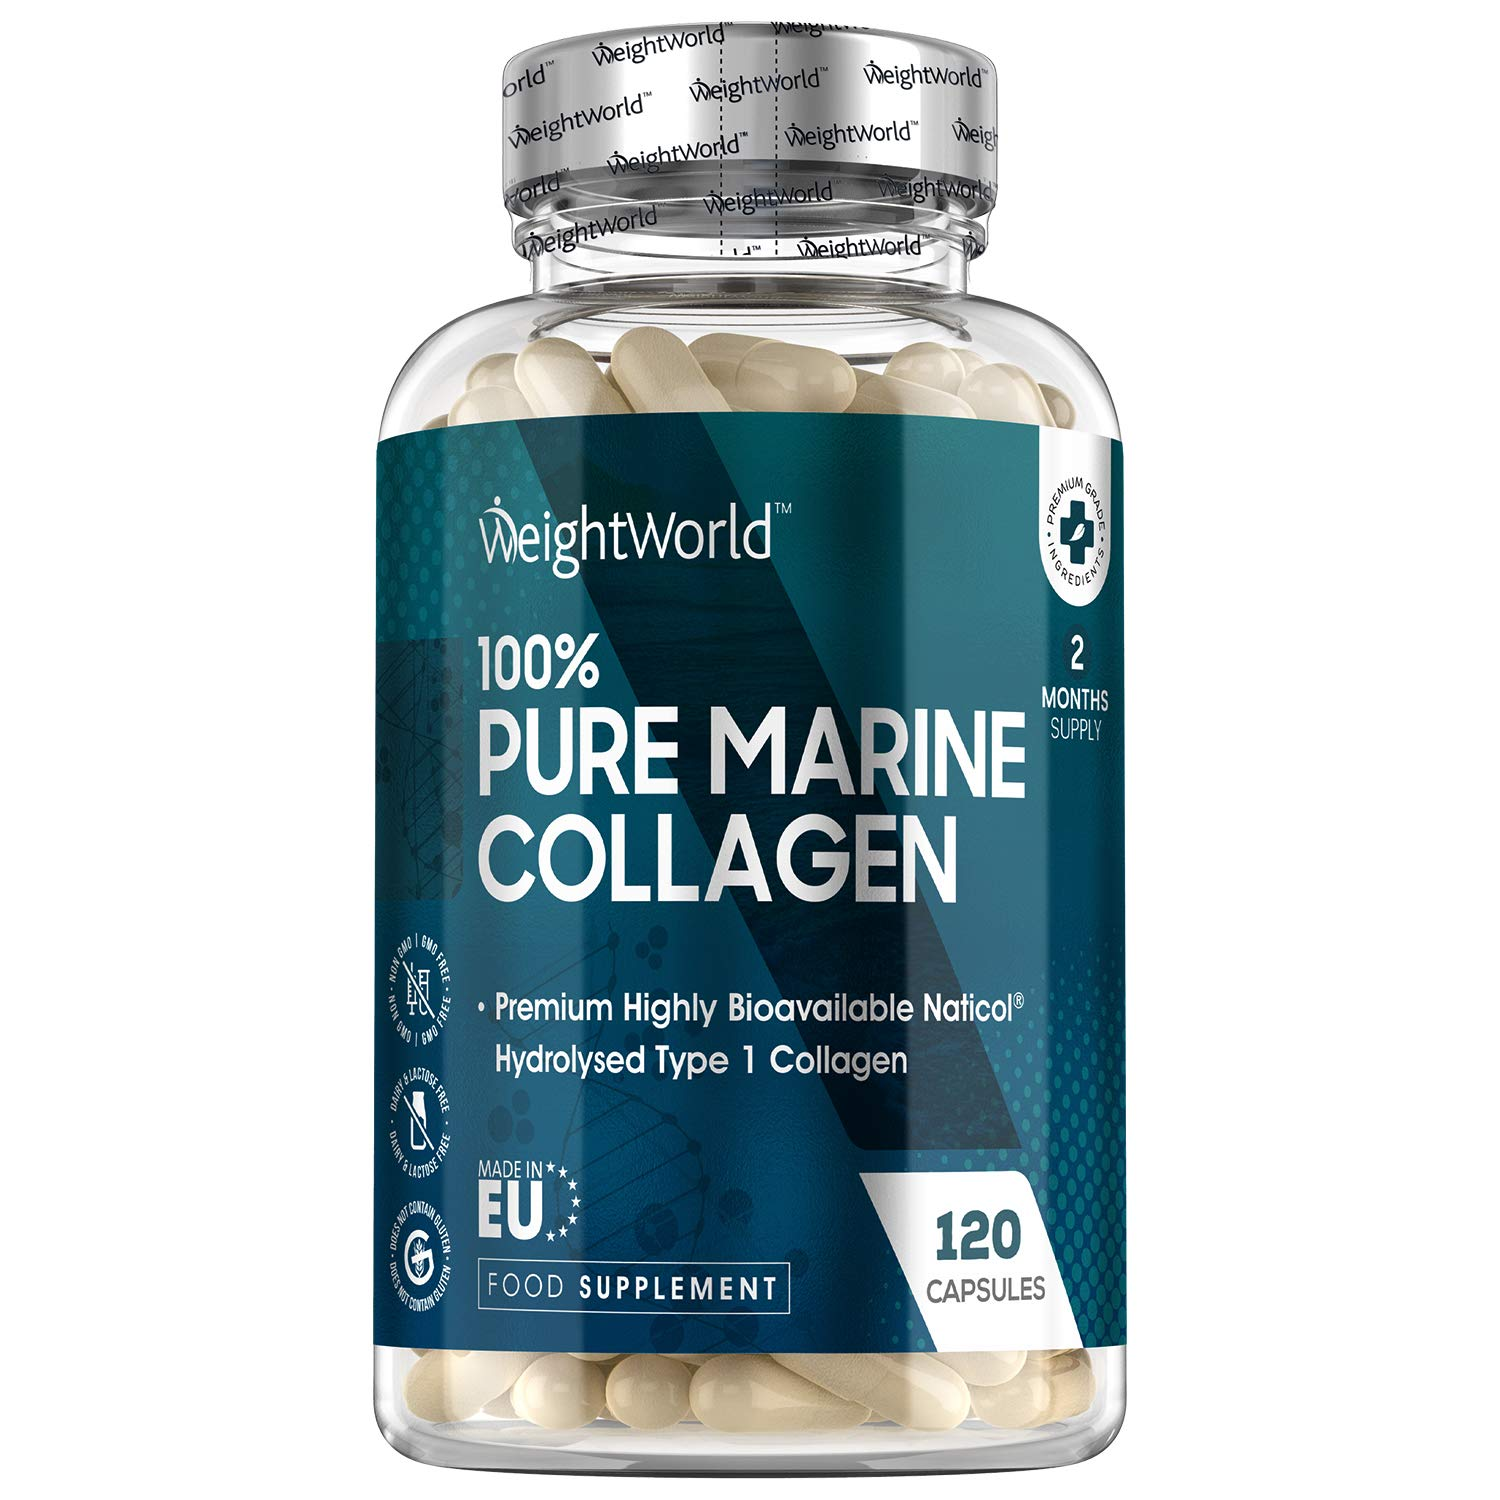 Pure Marine Collagen Capsules - 1170mg - 120 Capsules (2 Month Supply) NatiCol Hydrolysed Collagen Protein Peptides for Skin, Hair, Muscle, Nails & Joints, Wild Caught Fish Collagen - Made in EU